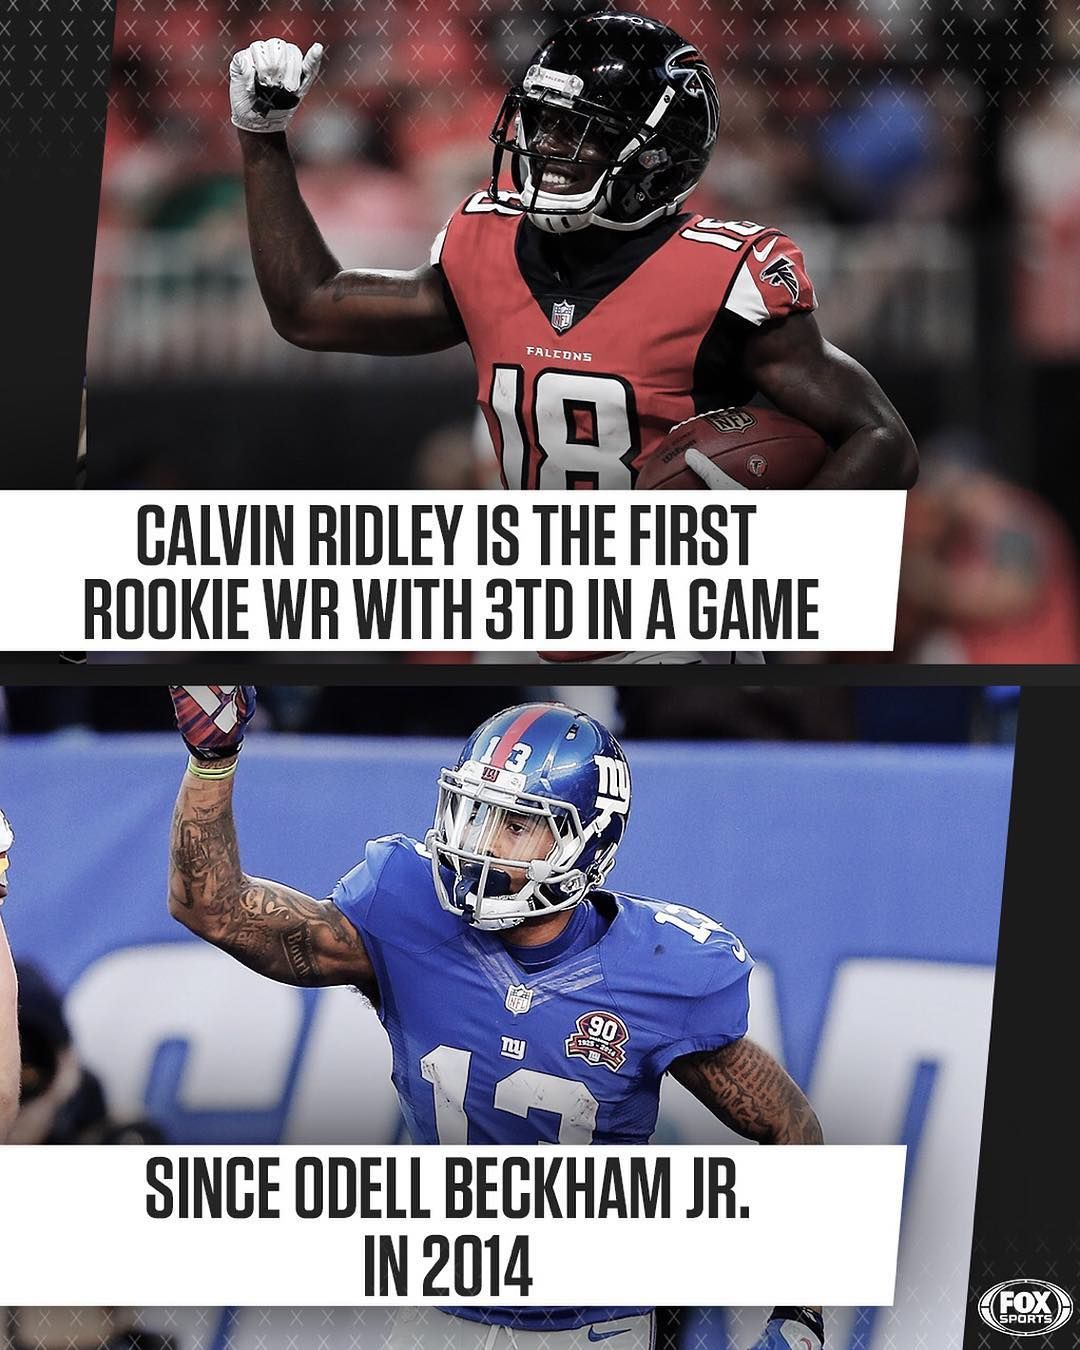 Nfl On Fox On Instagram Have A Day Calvin Ridley Beckham Jr Fox Sports Nfl